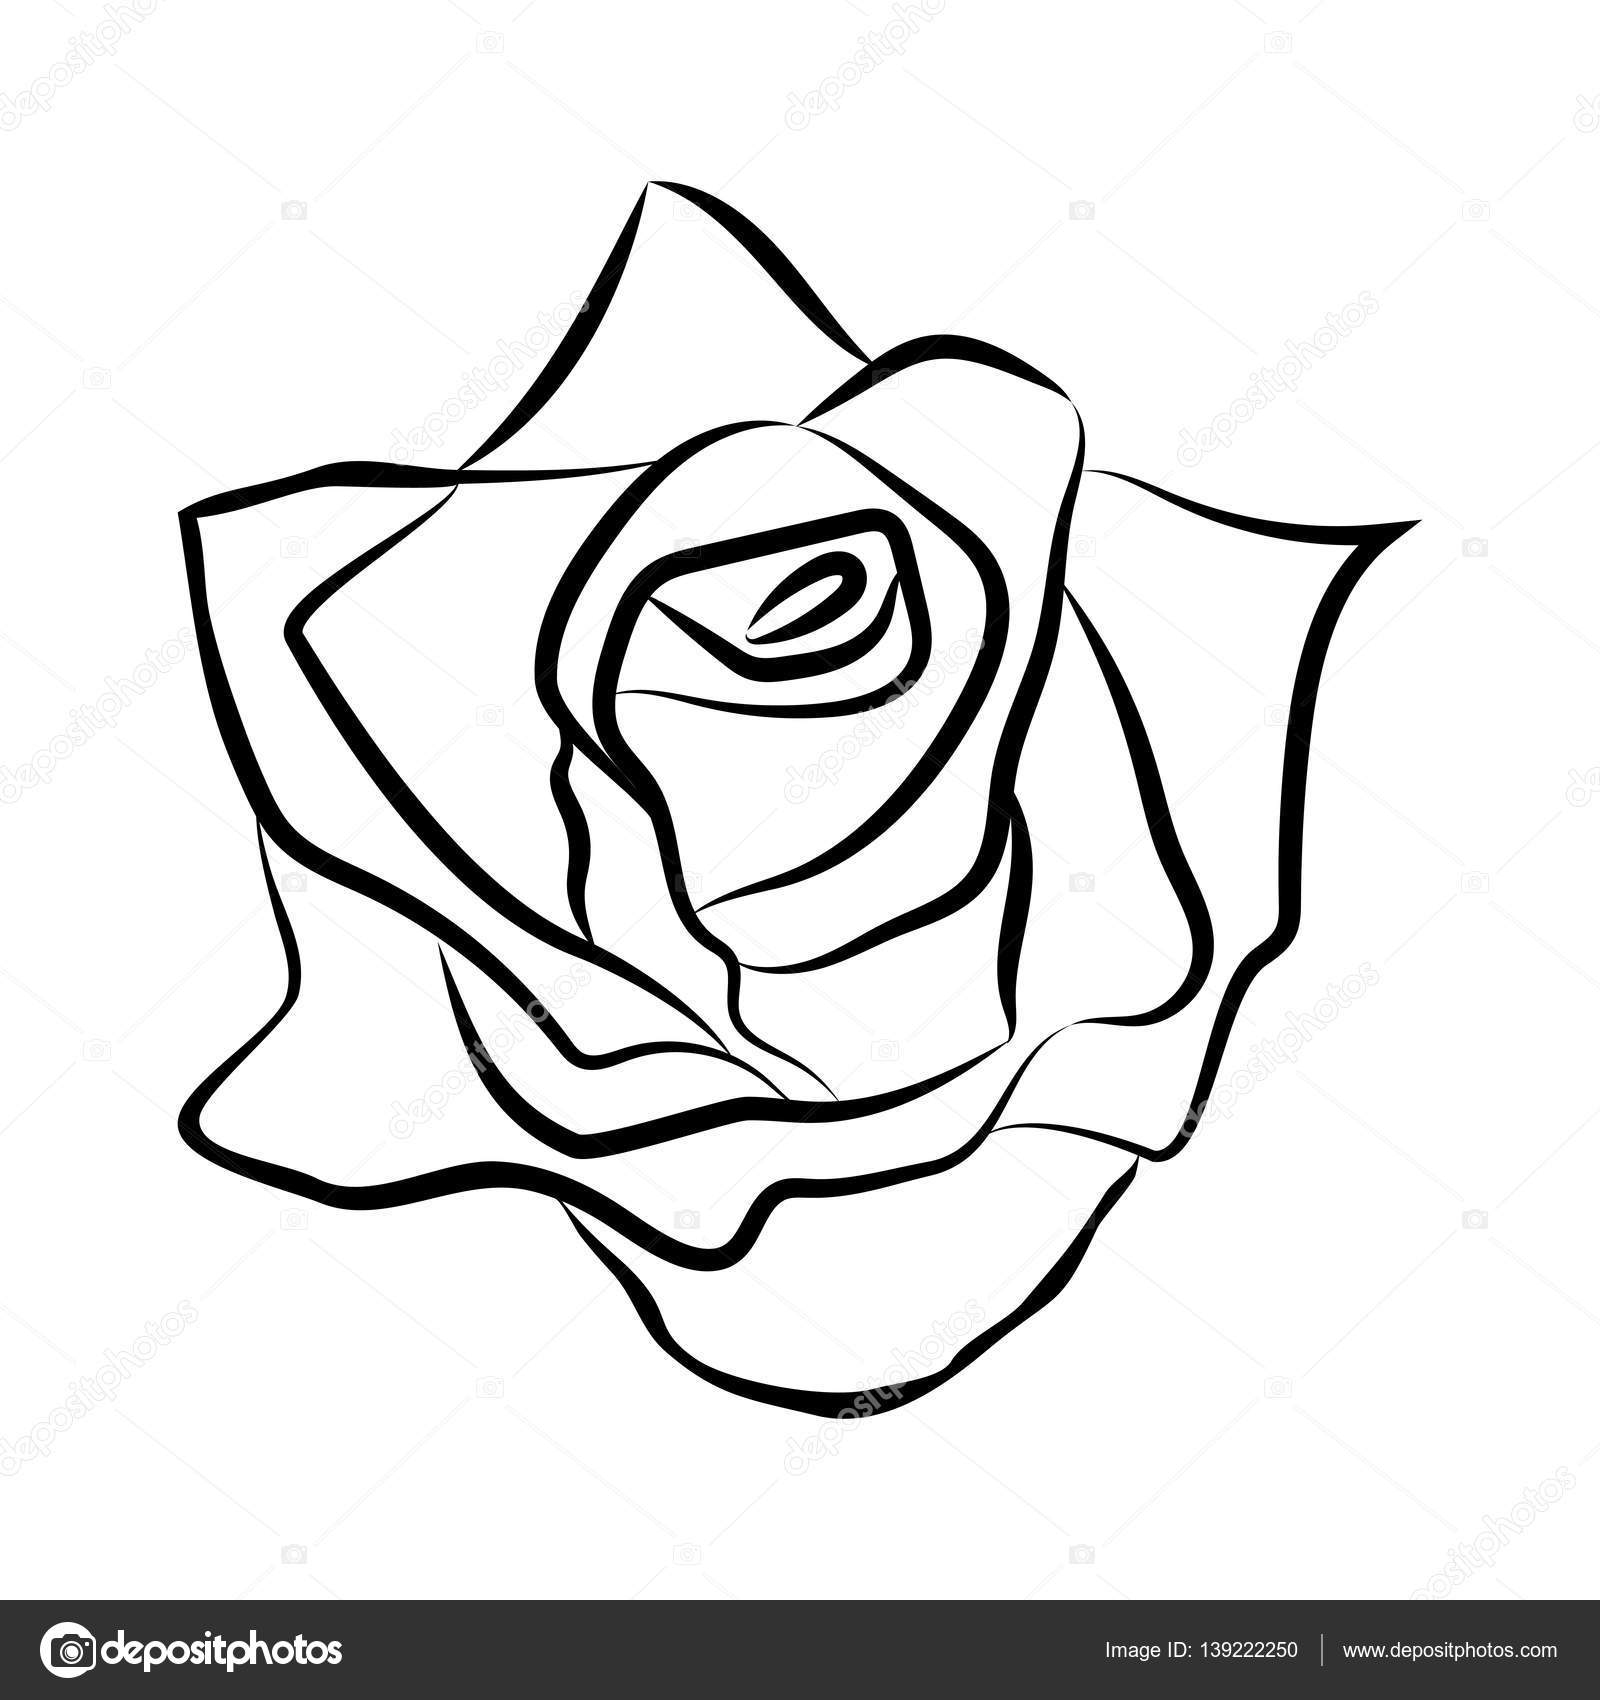 Dessin au trait esquisse de rose image vectorielle madozi 139222250 - Dessins de rose ...